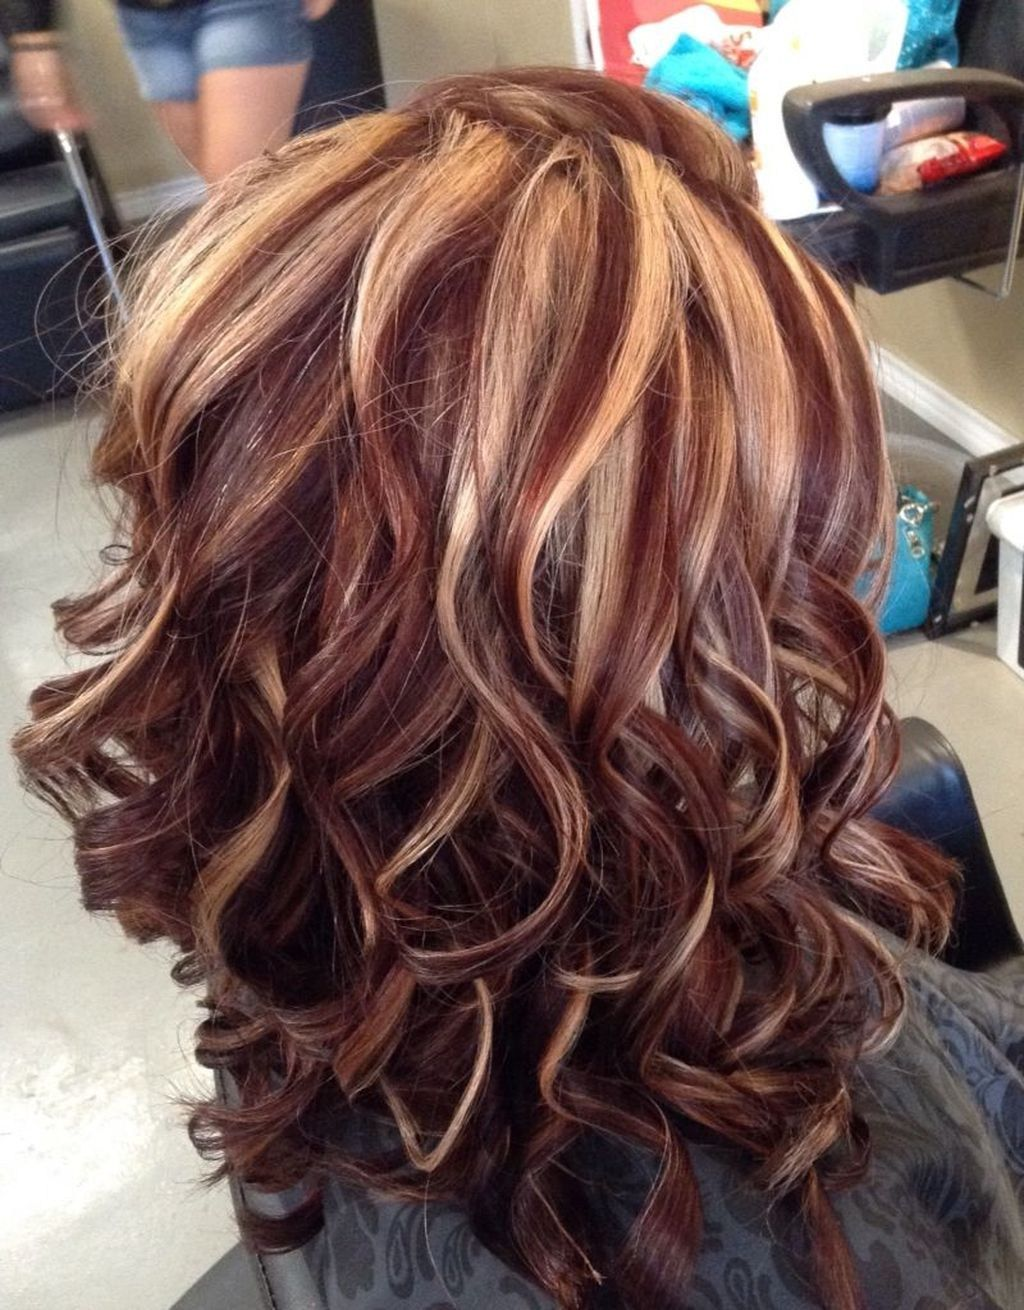 Gorgeous Spring Hair Color Ideas For Brunette 42 | Self ...